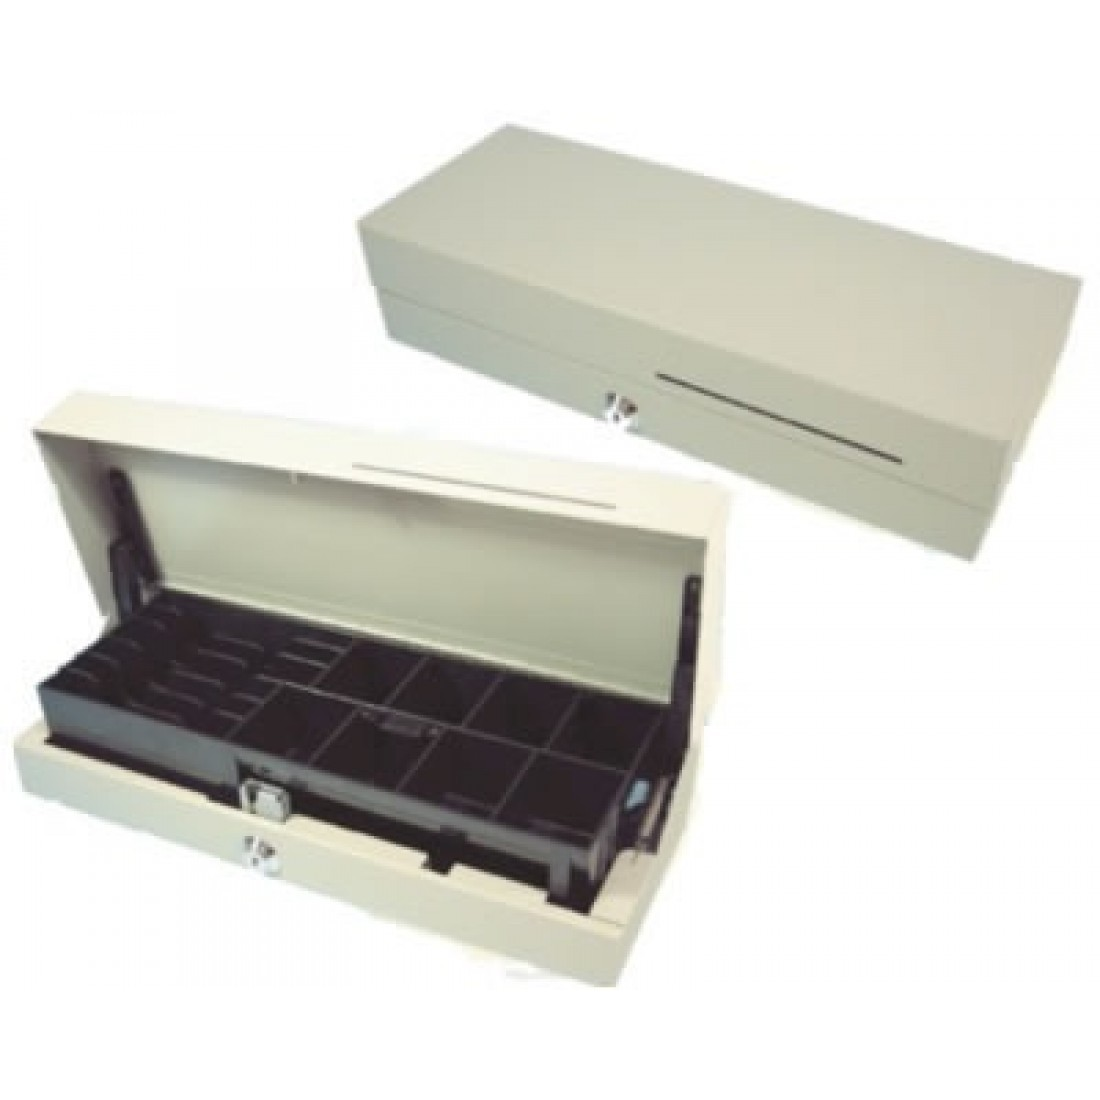 Costplus Com: CashBases CostPlus FlitpTop 460 Electric Cashdrawer White